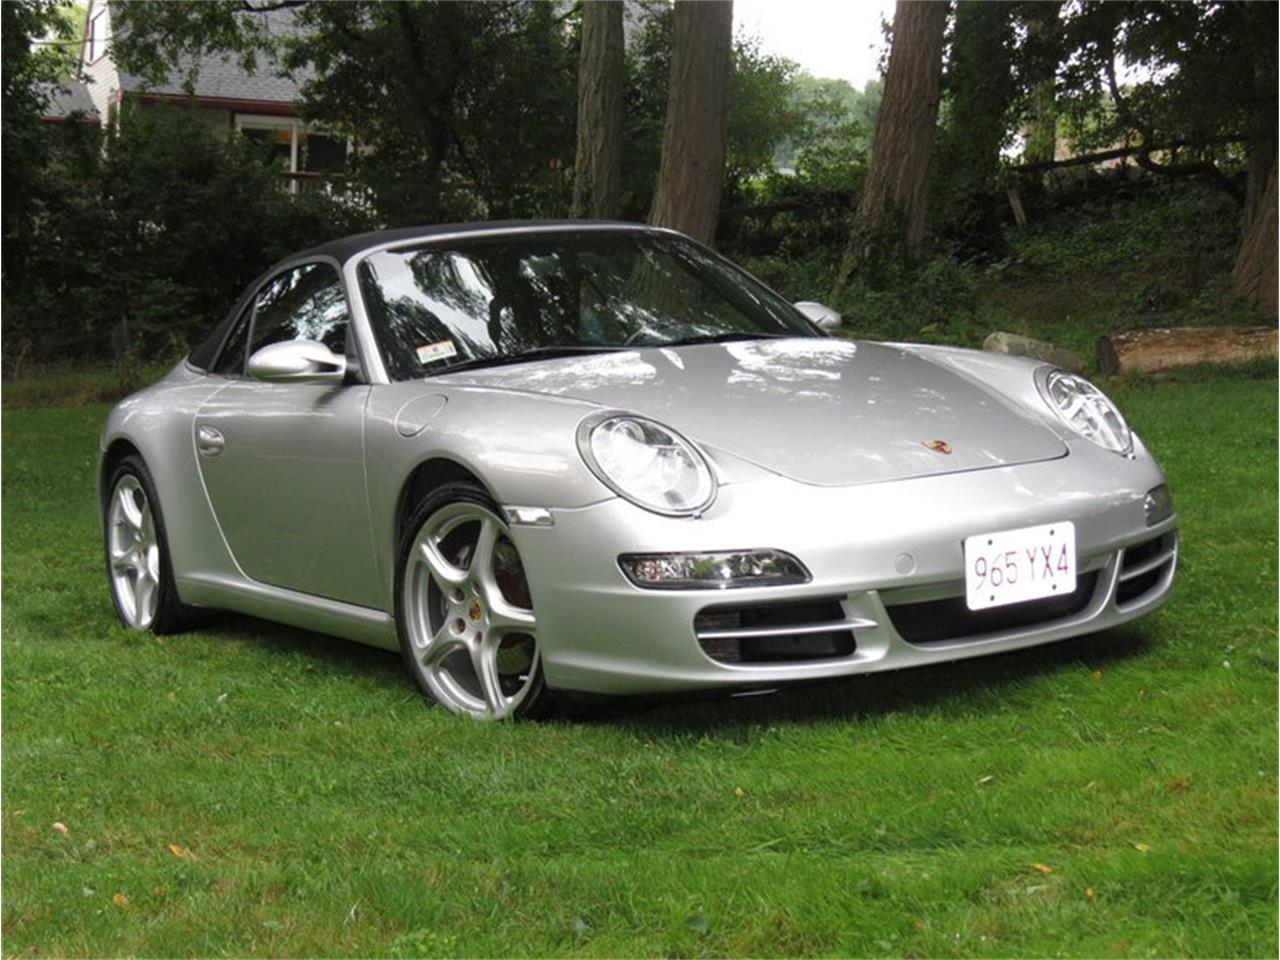 Large Picture of 2005 911 Carrera located in Massachusetts - $29,950.00 Offered by Silverstone Motorcars - JD2Q